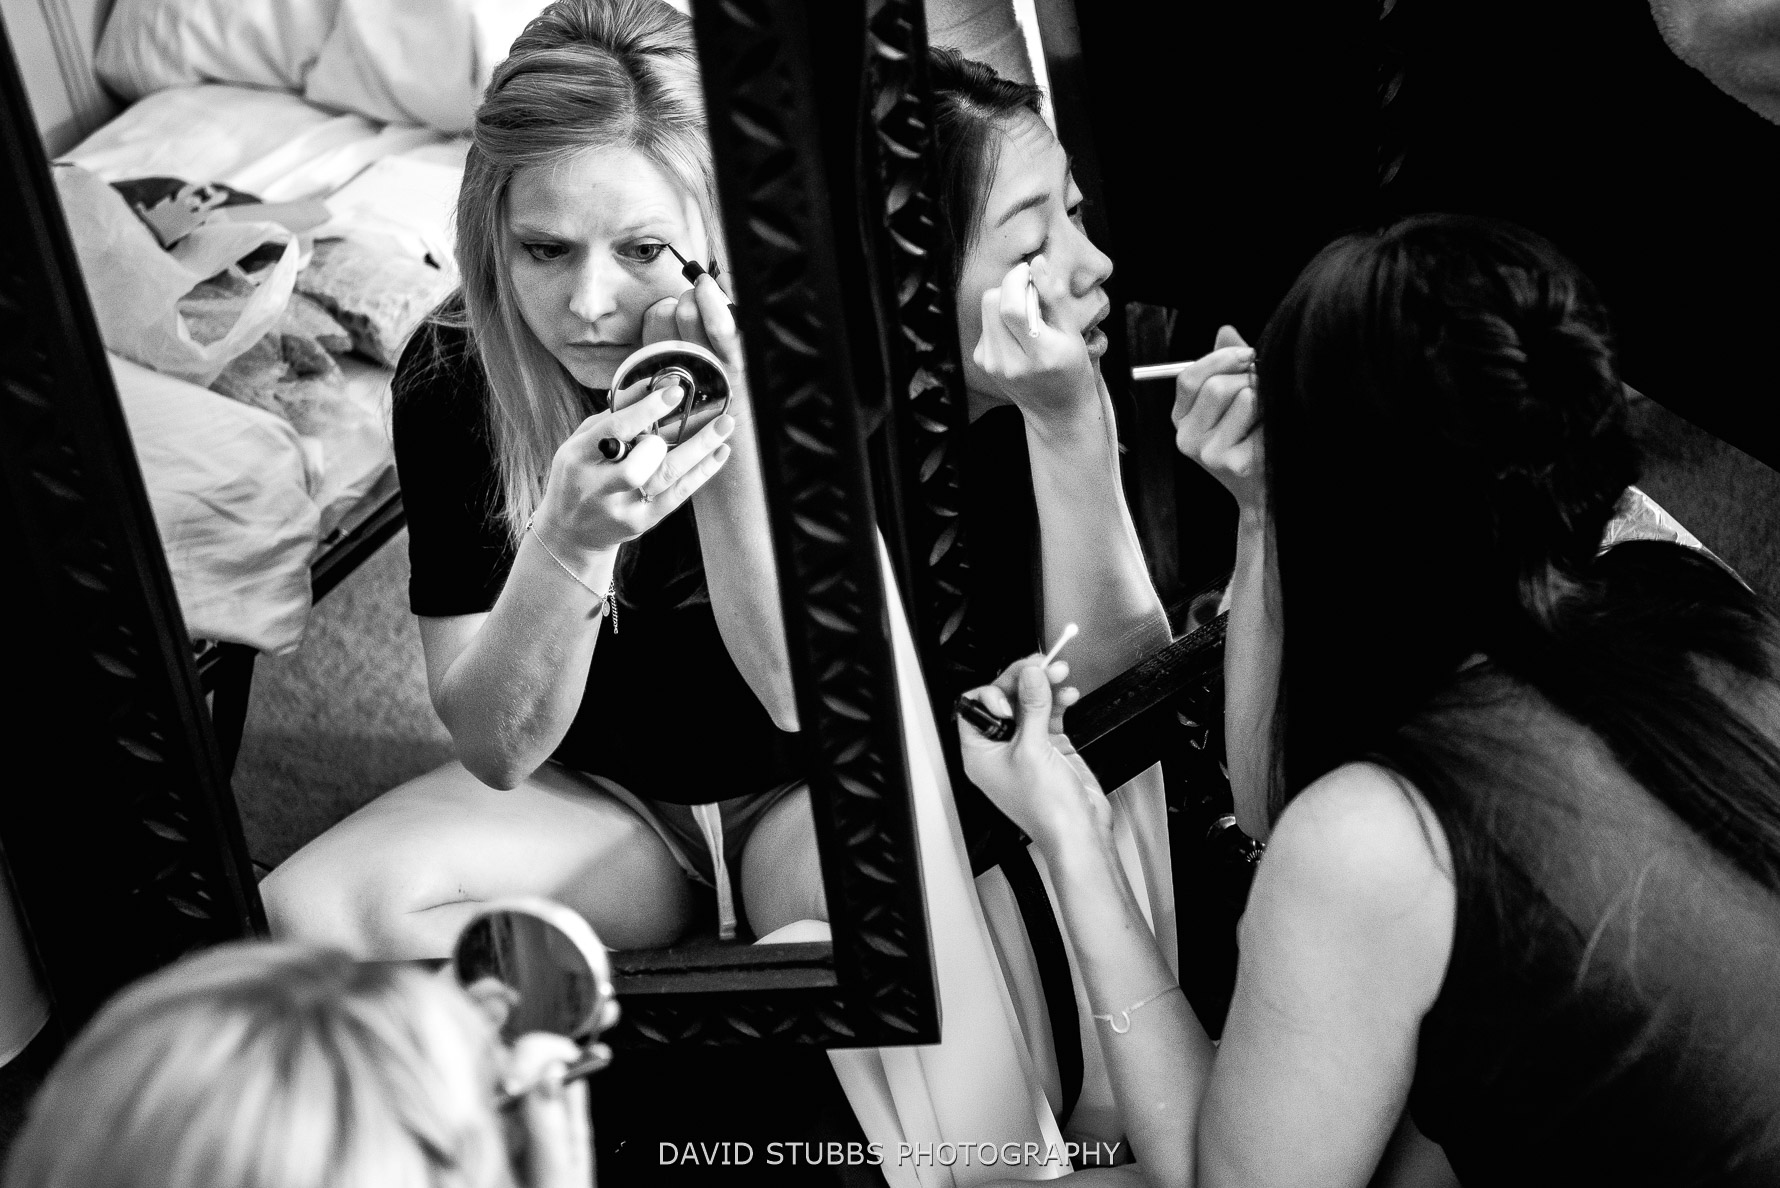 mirror reflection photo applying make-up